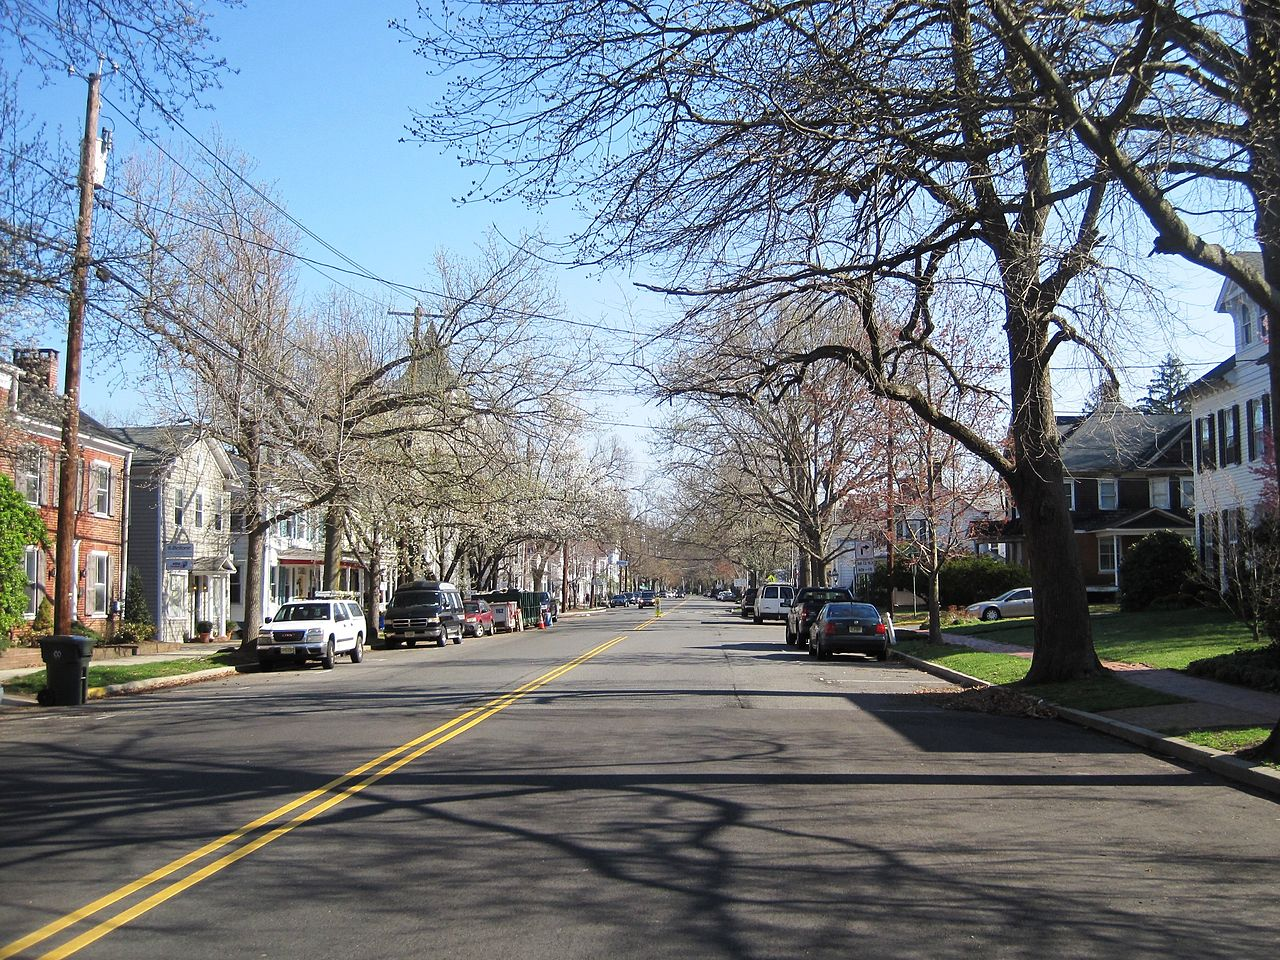 Cranbury - Top Rated Small Town For Amazing Vacation In New Jersey